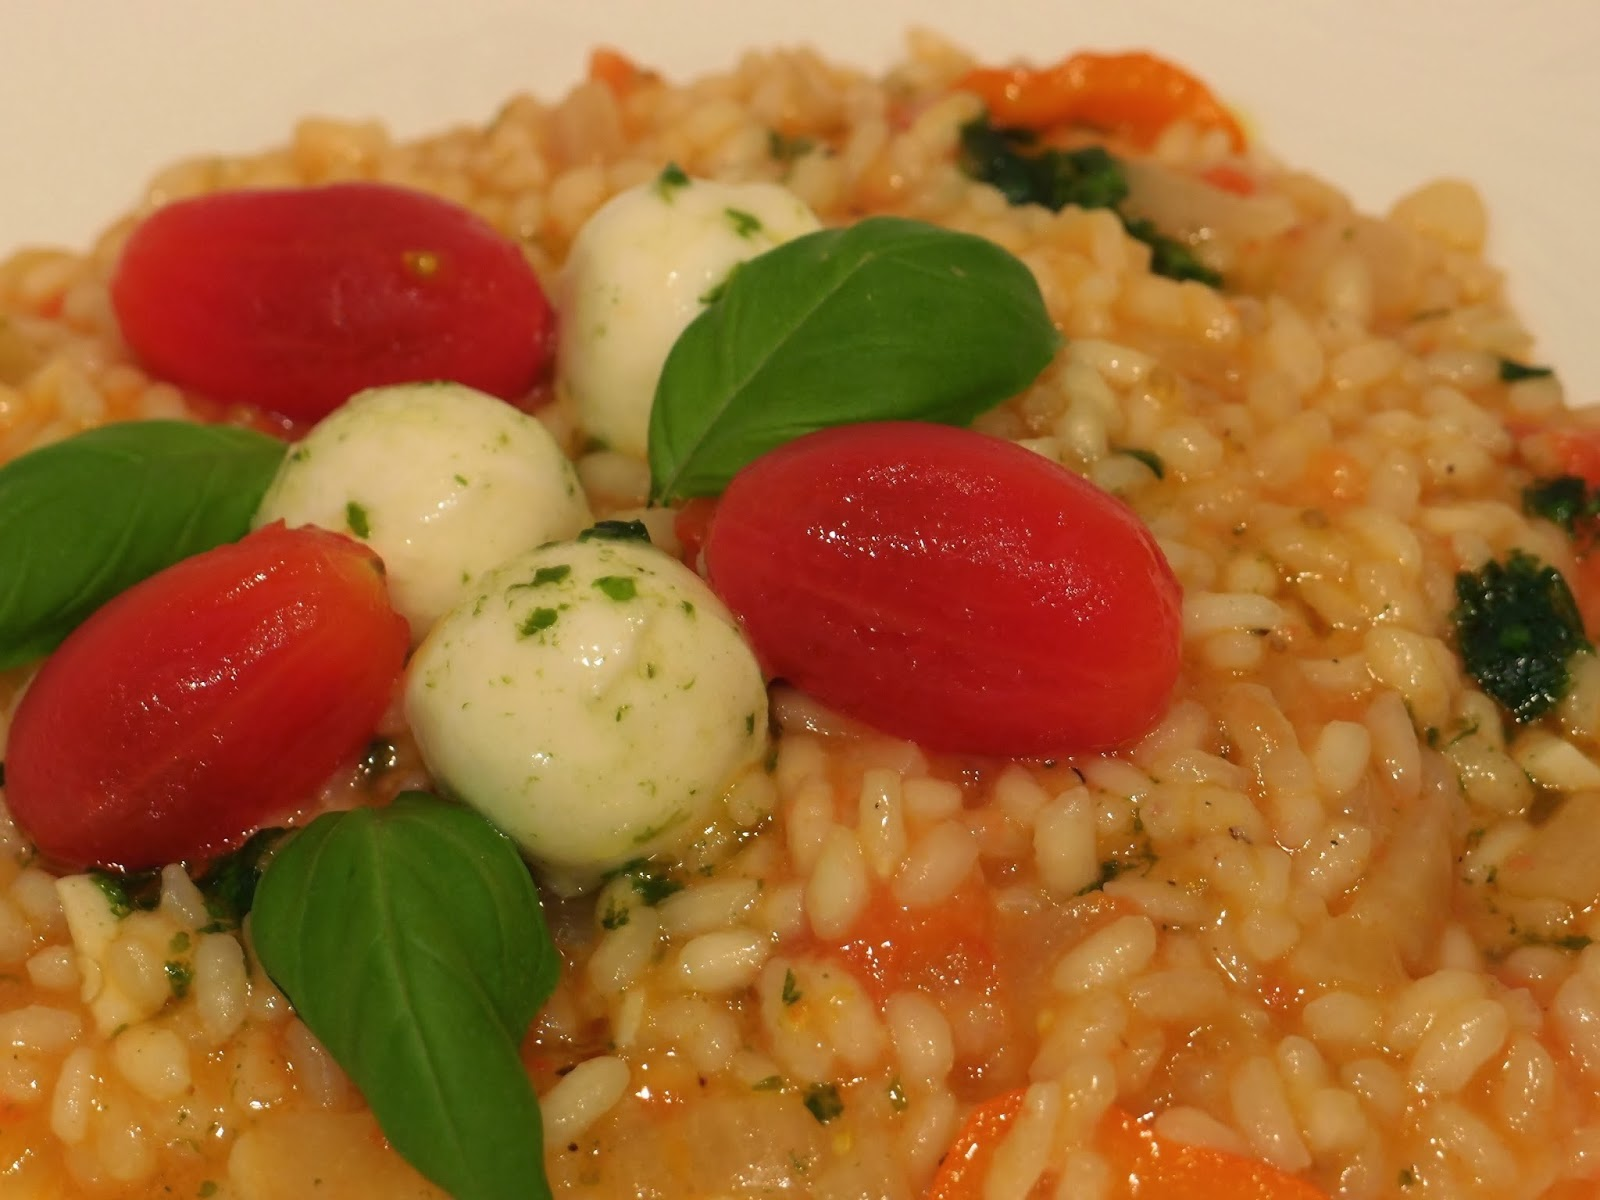 The VegHog: Tomato and basil risotto